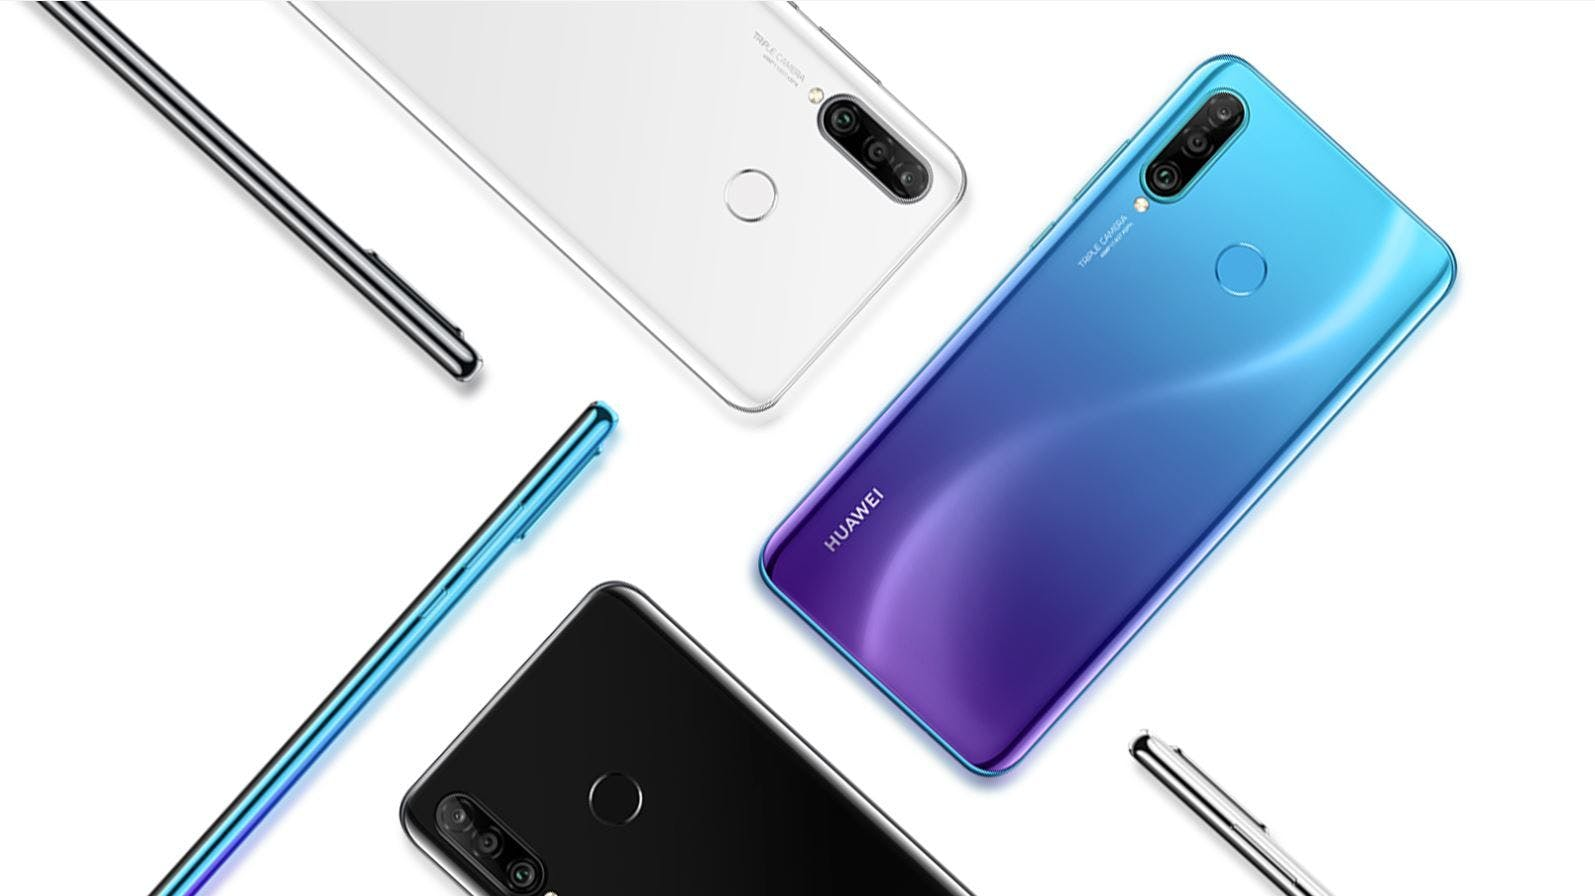 The Cheapest Phone With Triple Rear Camera